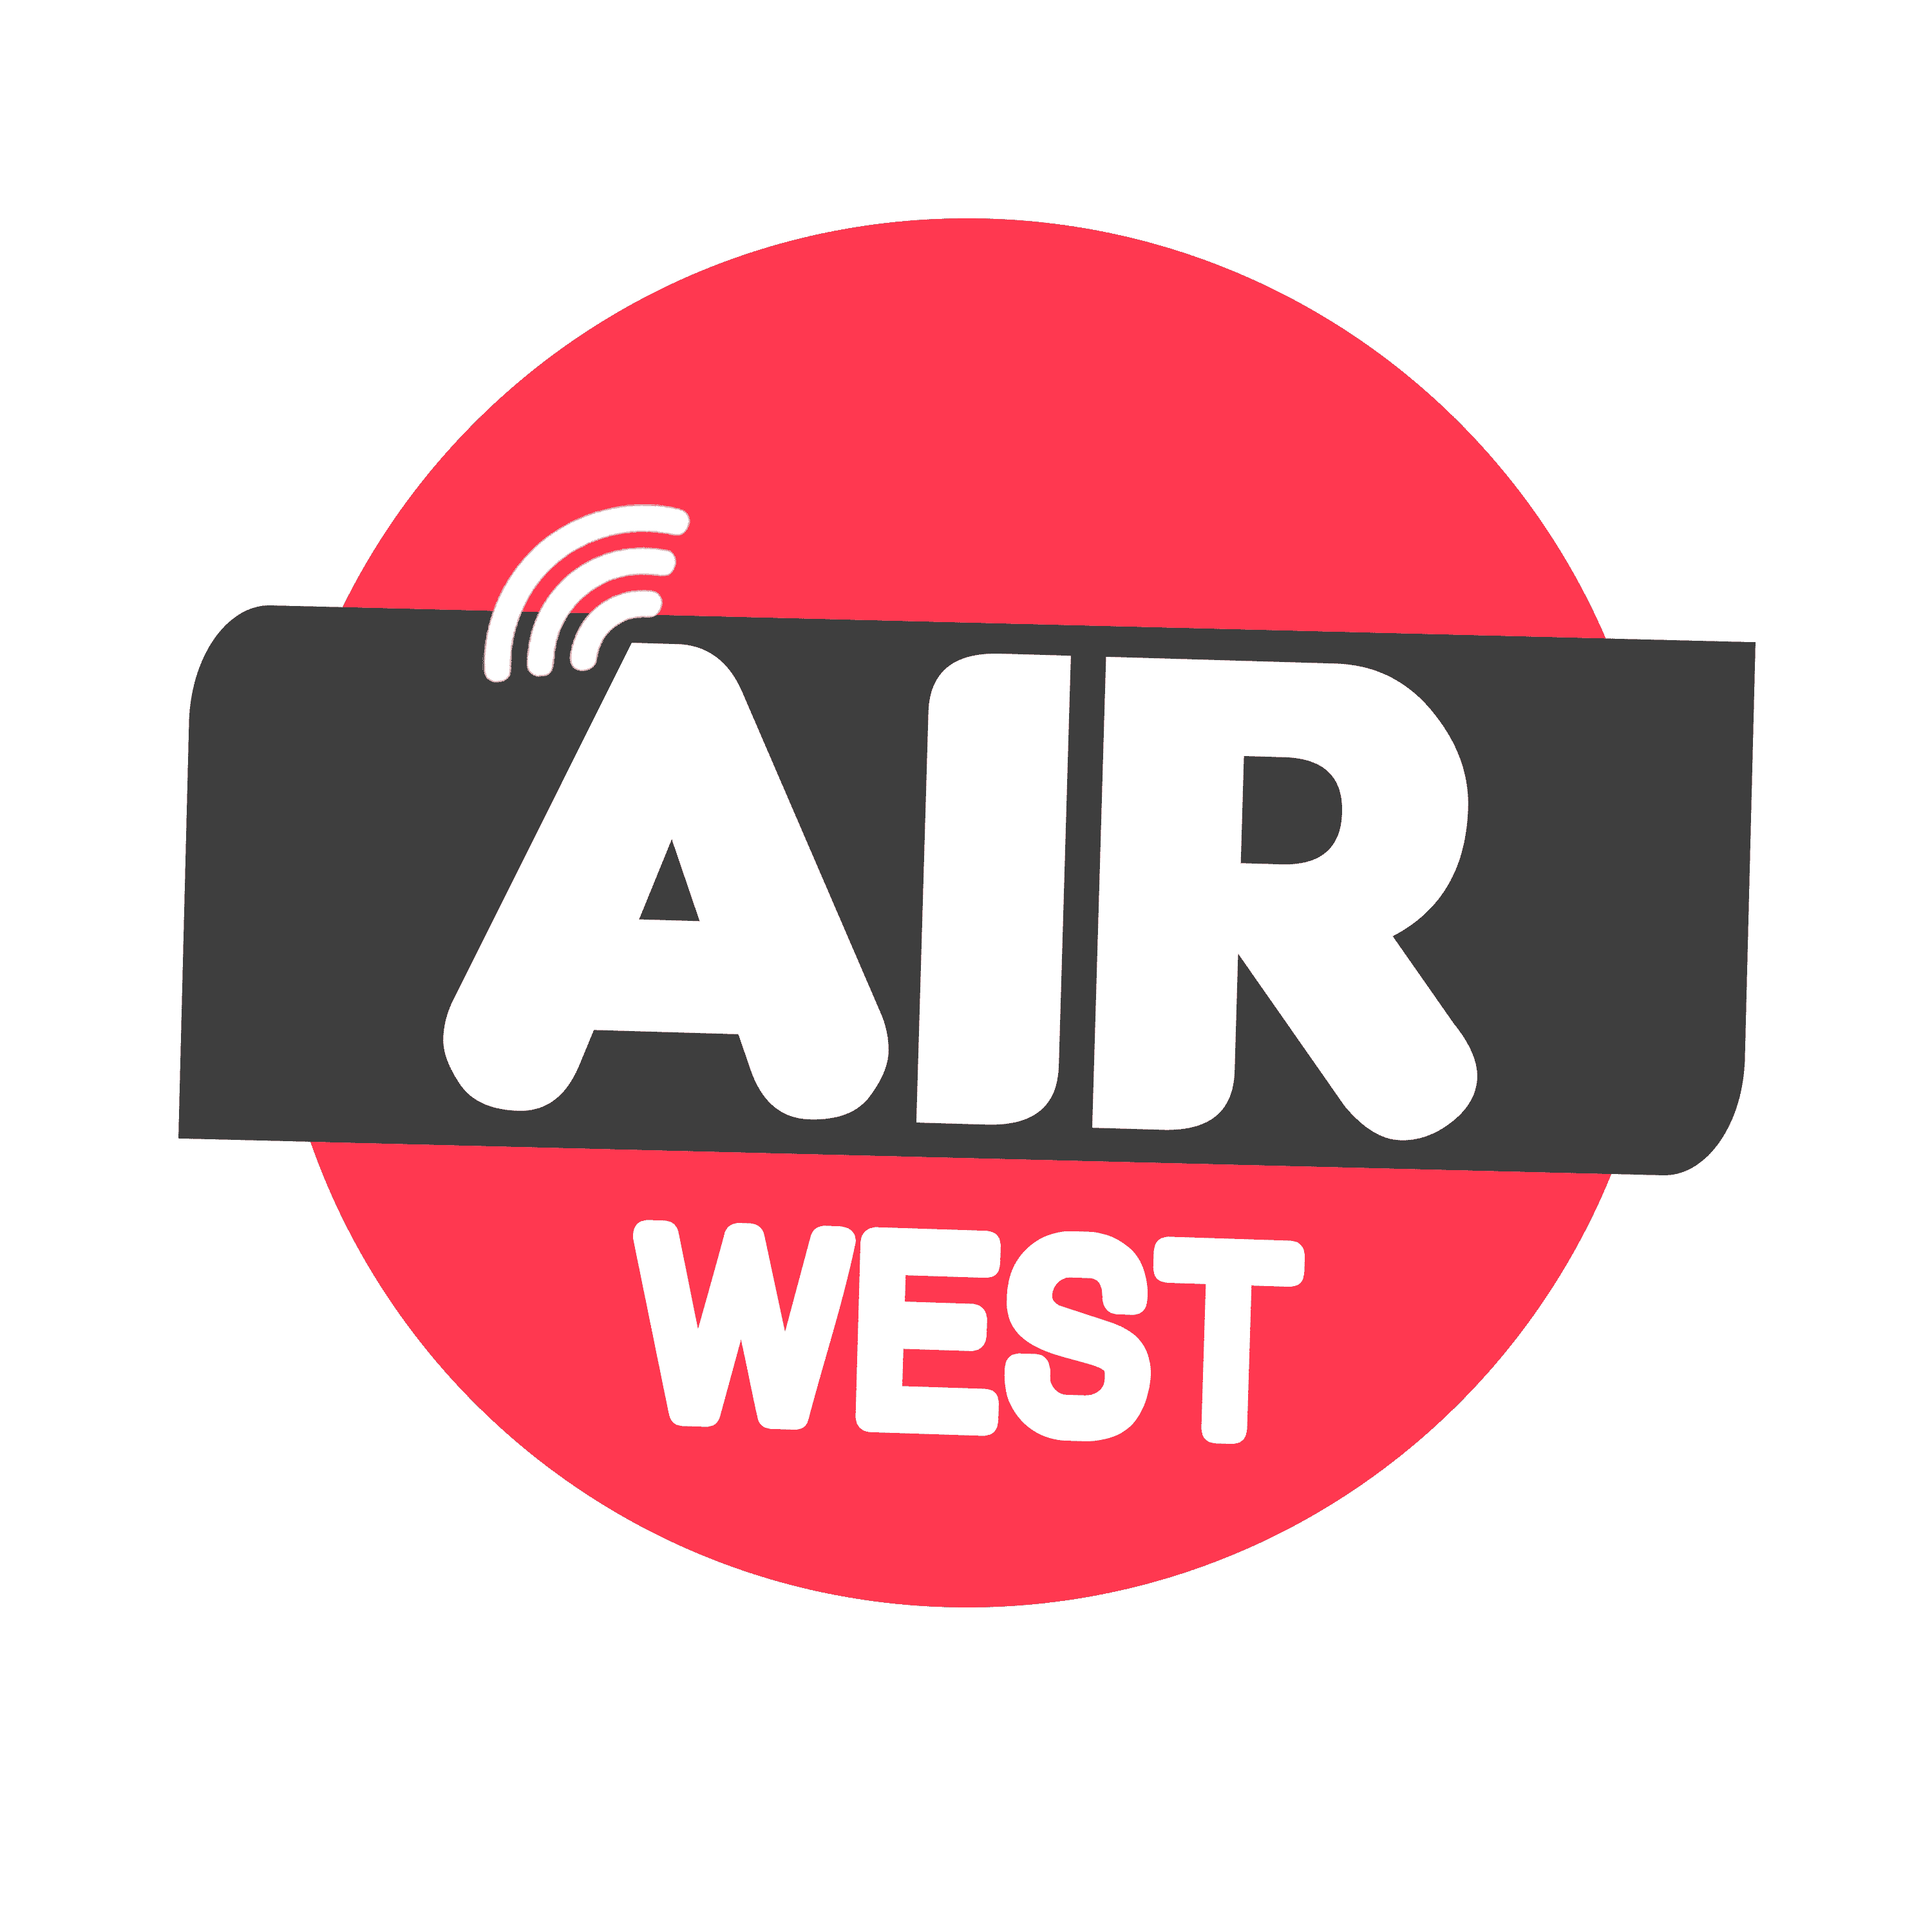 Ecouter Air-west